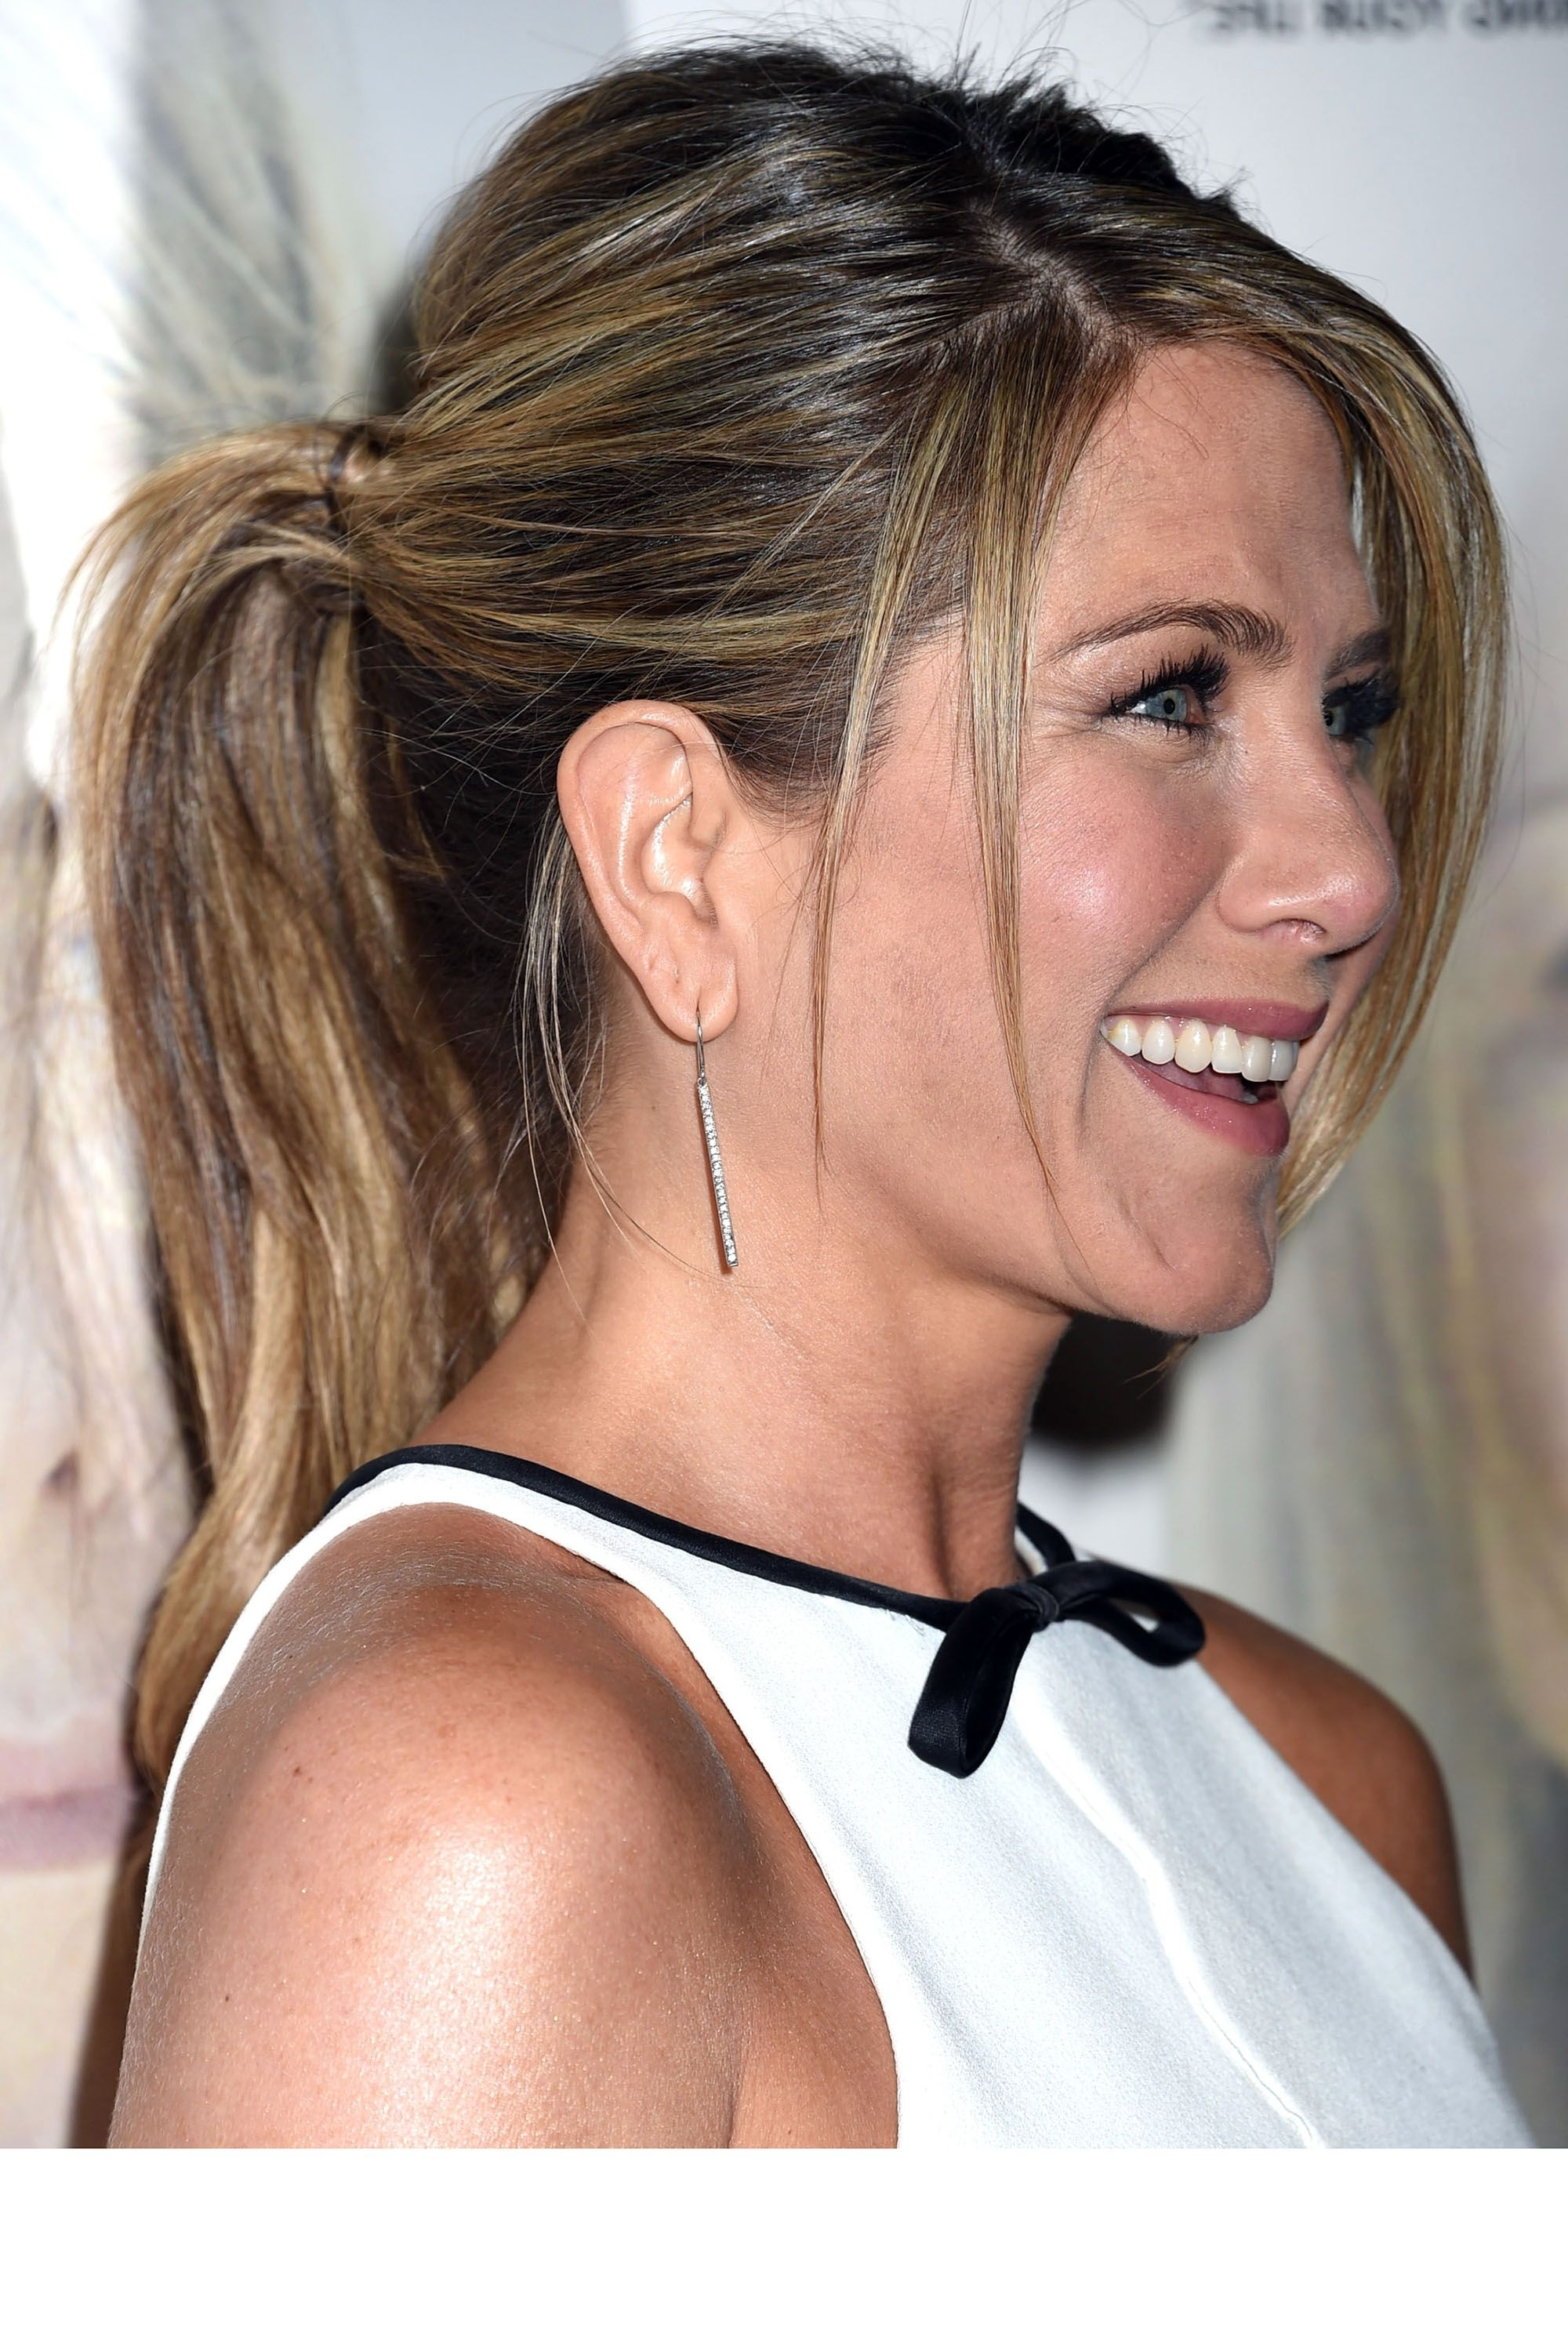 20 New Ways To Wear A Ponytail – Best Celebrity Ponytails Of 2017 Within Current Poofy Pony Hairstyles With Face Framing Strands (View 11 of 20)